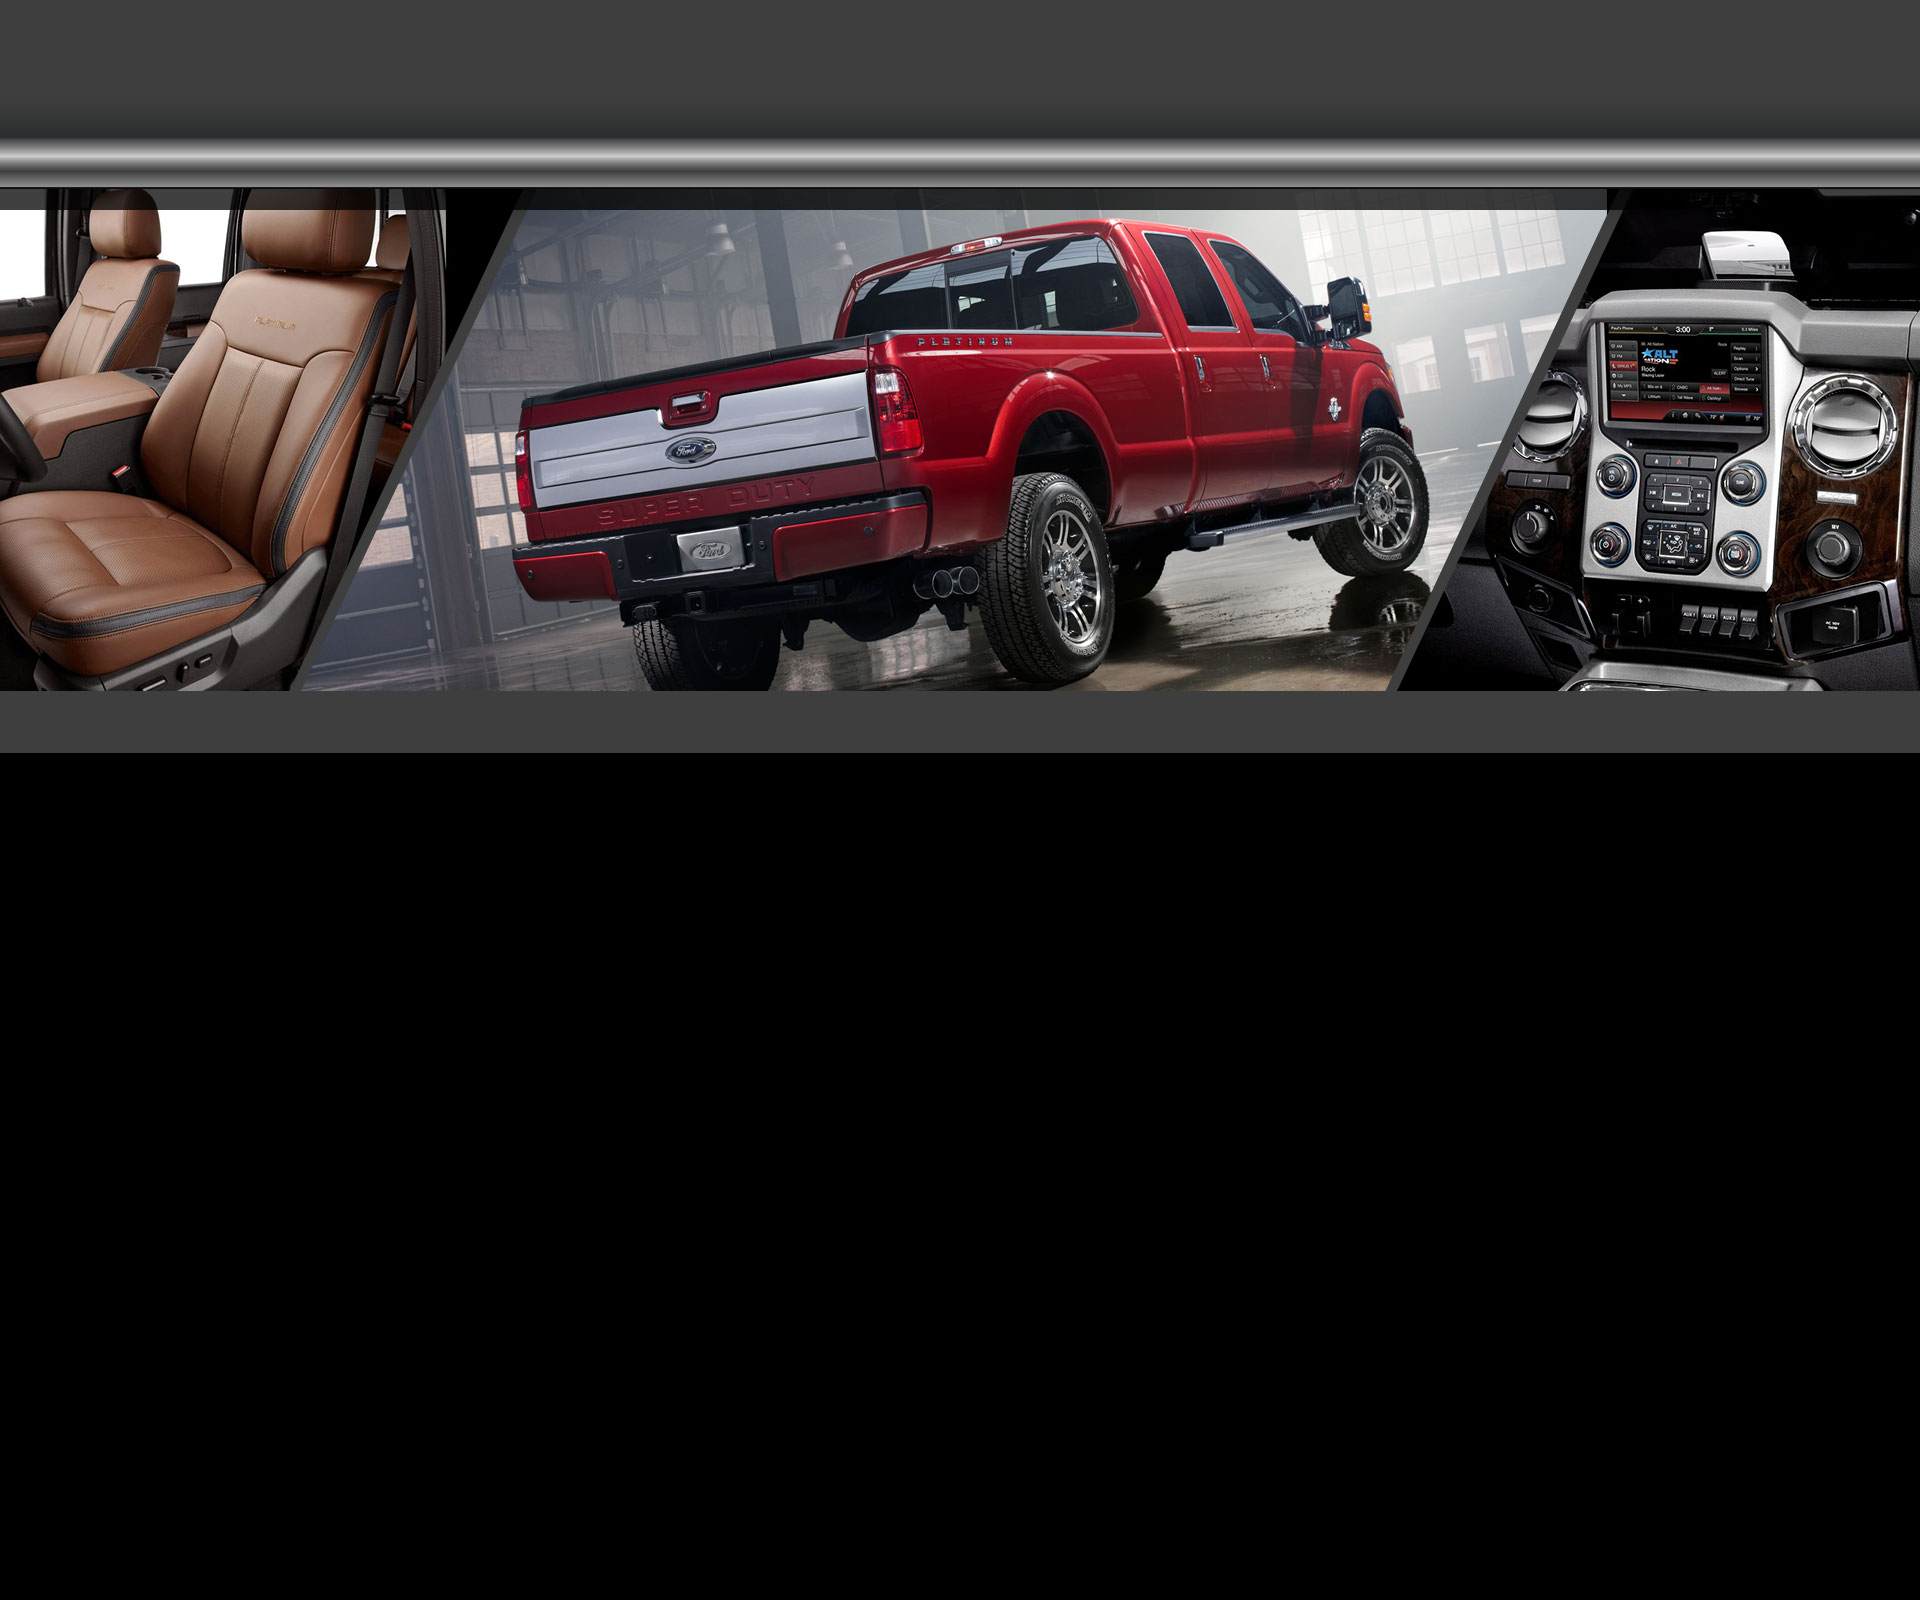 Hummer Used Cars mercial Trucks For Sale Houston Diesel Houston